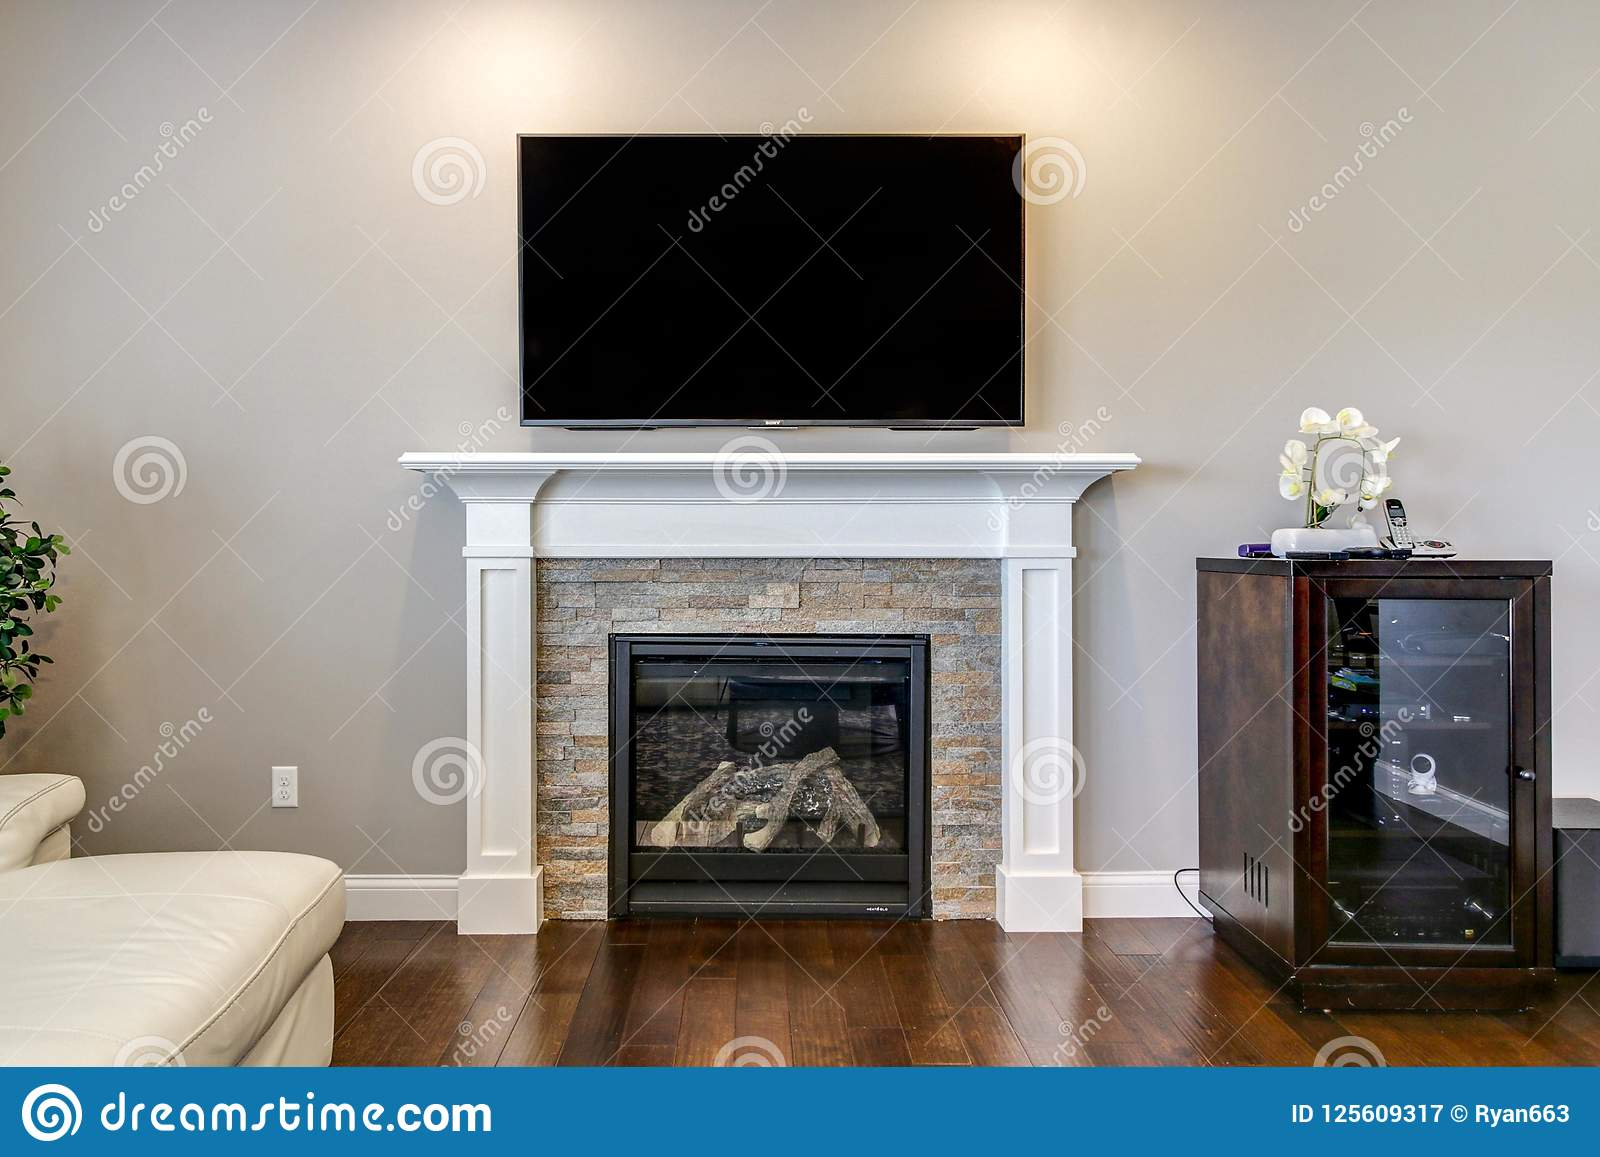 White And Stone Fireplace With Tv Above Stock Image Image Of